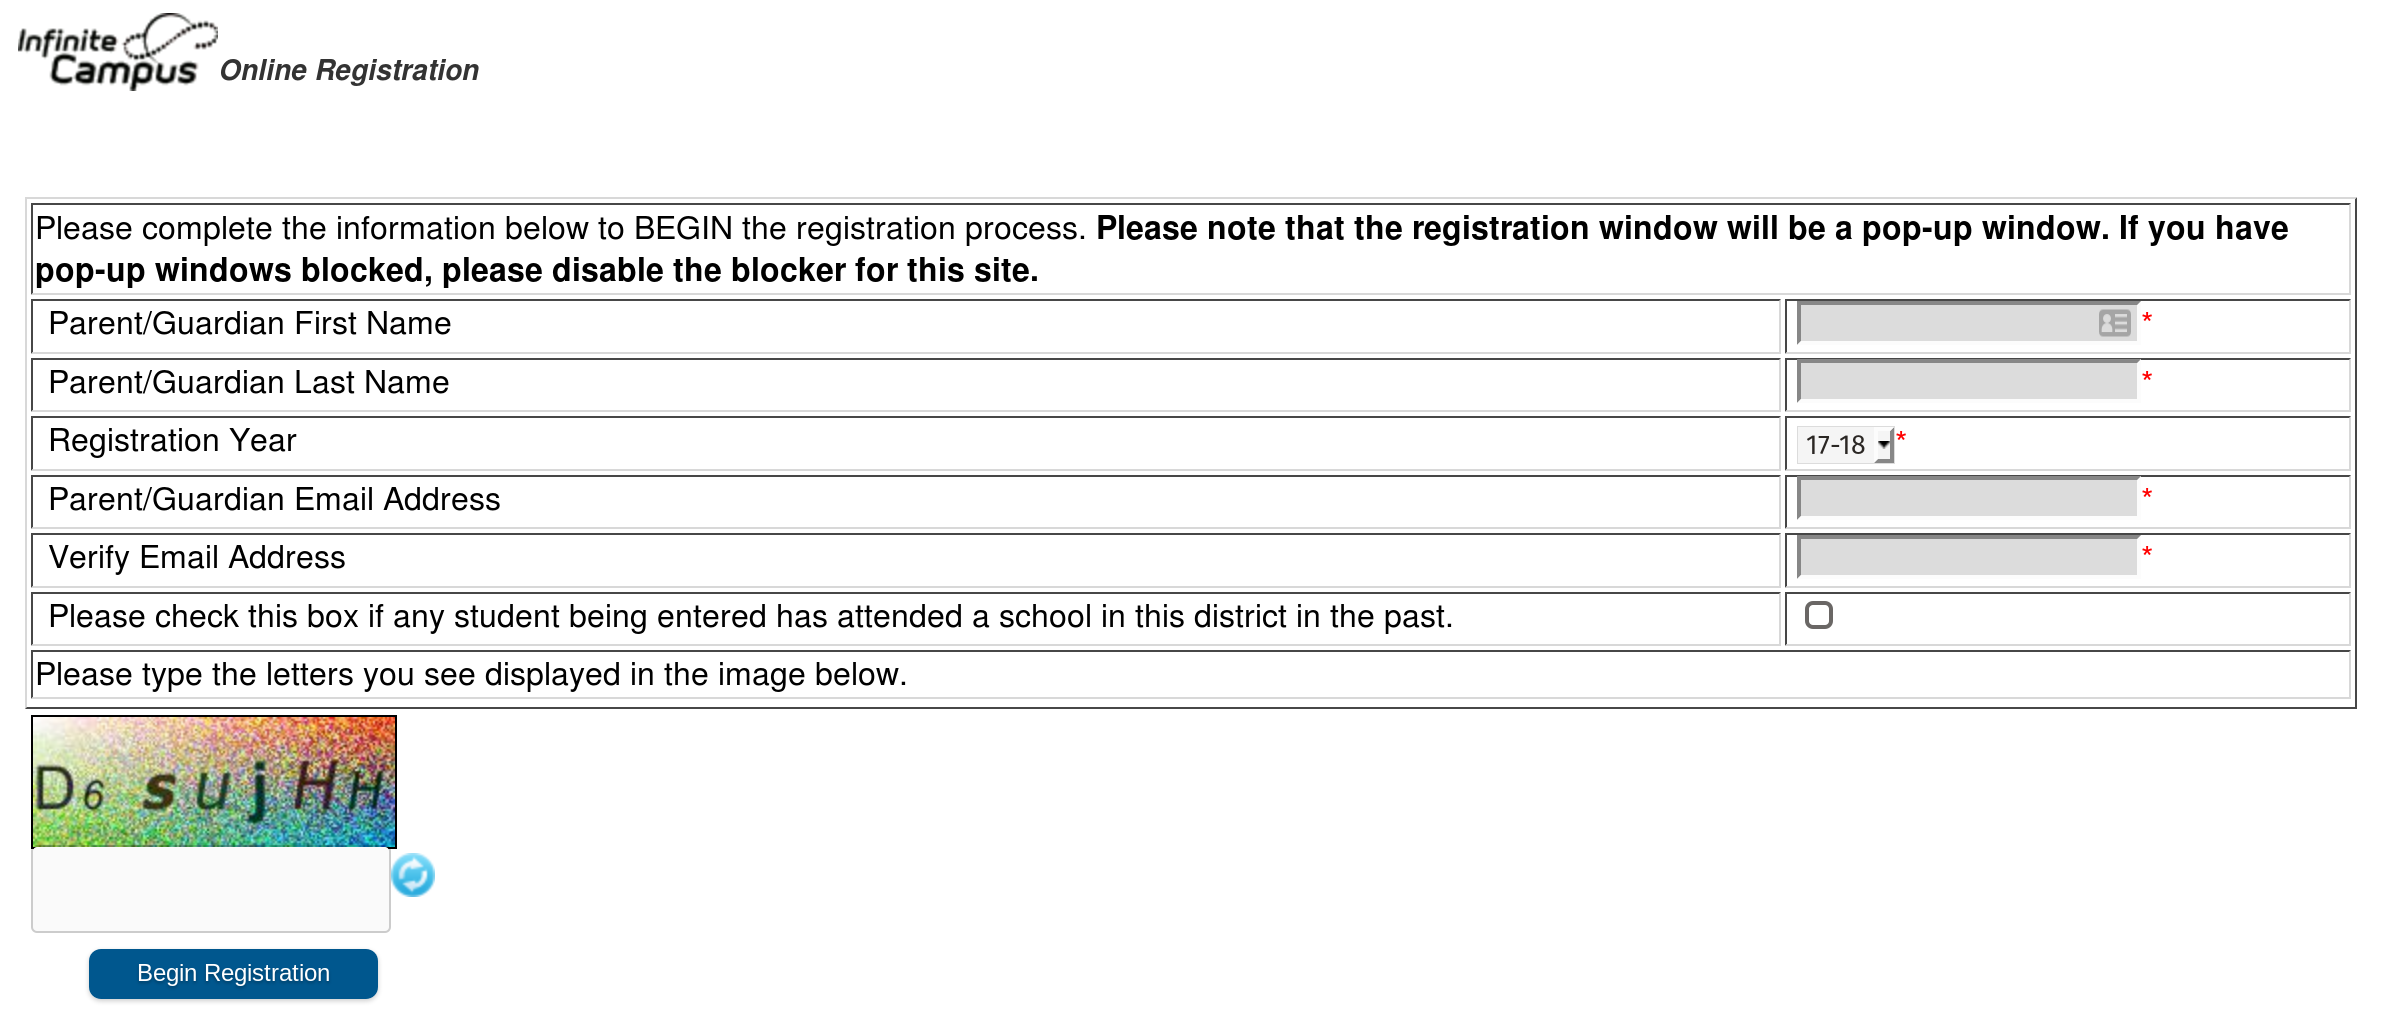 Registration Window